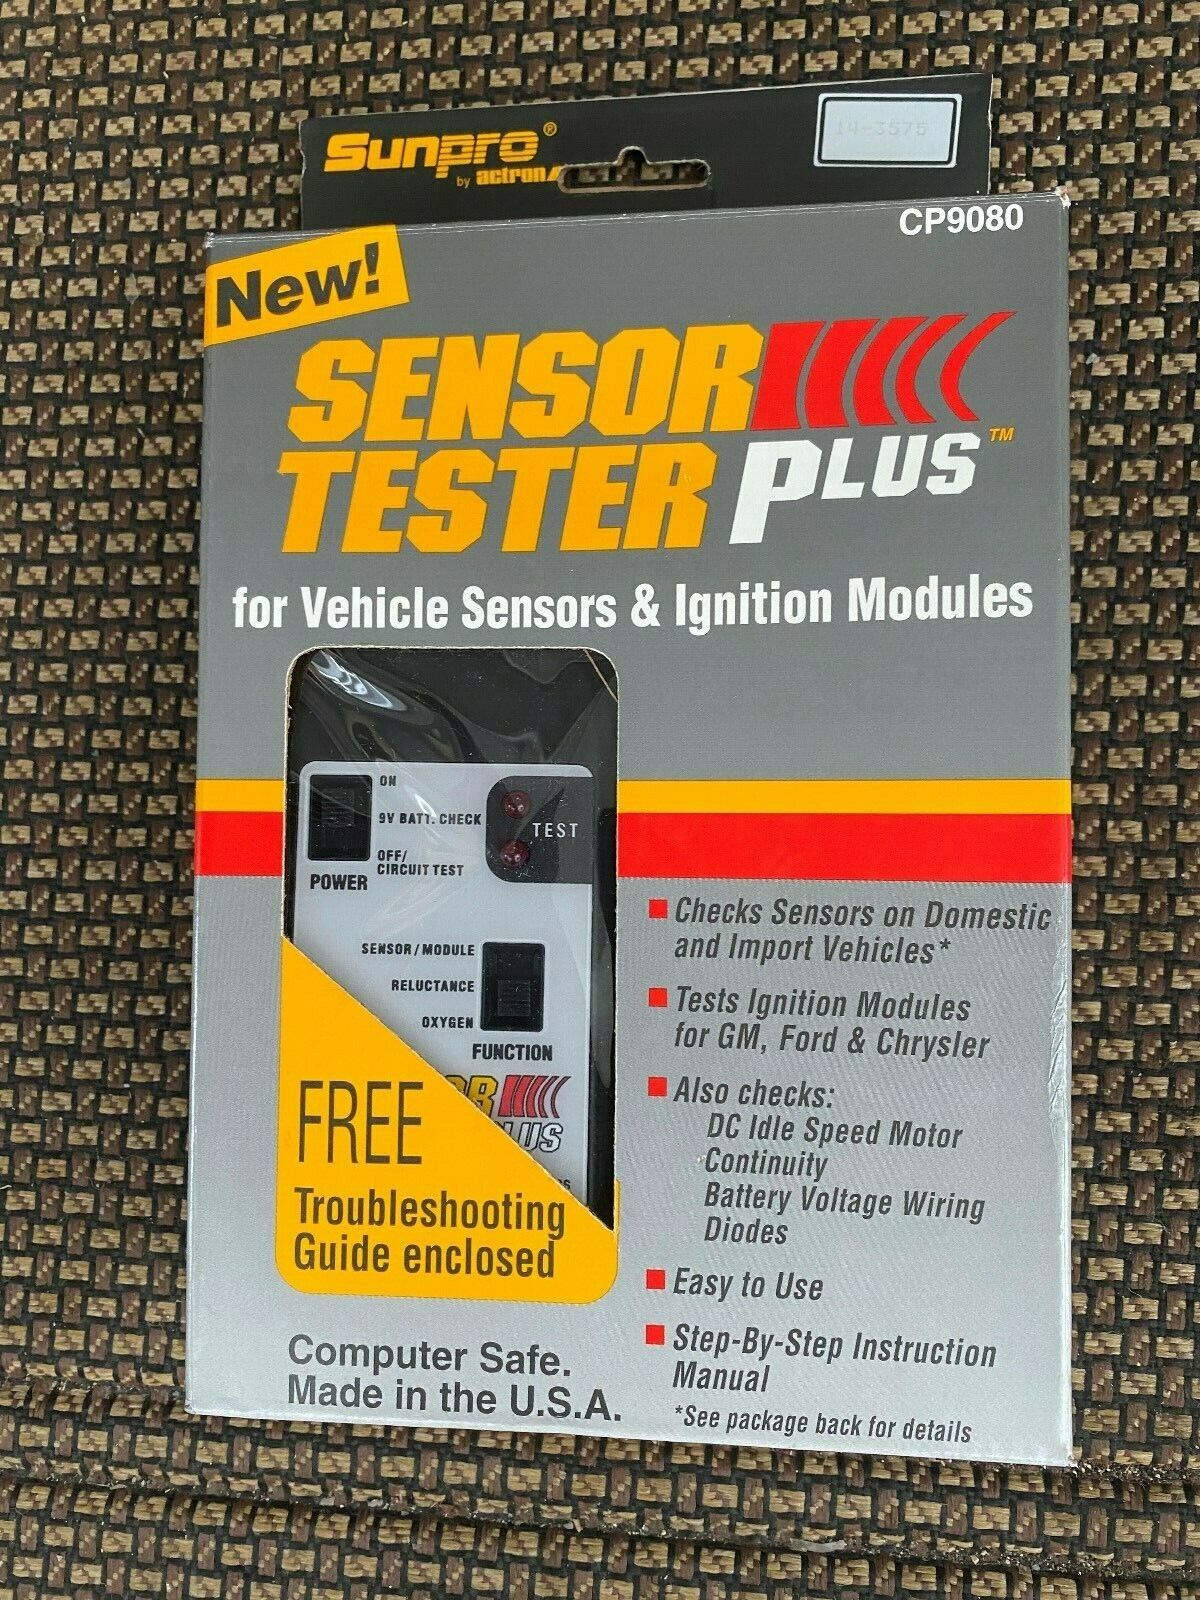 SunPro Sensor Tester Plus, 1980-1990 cars, New, Made in USA